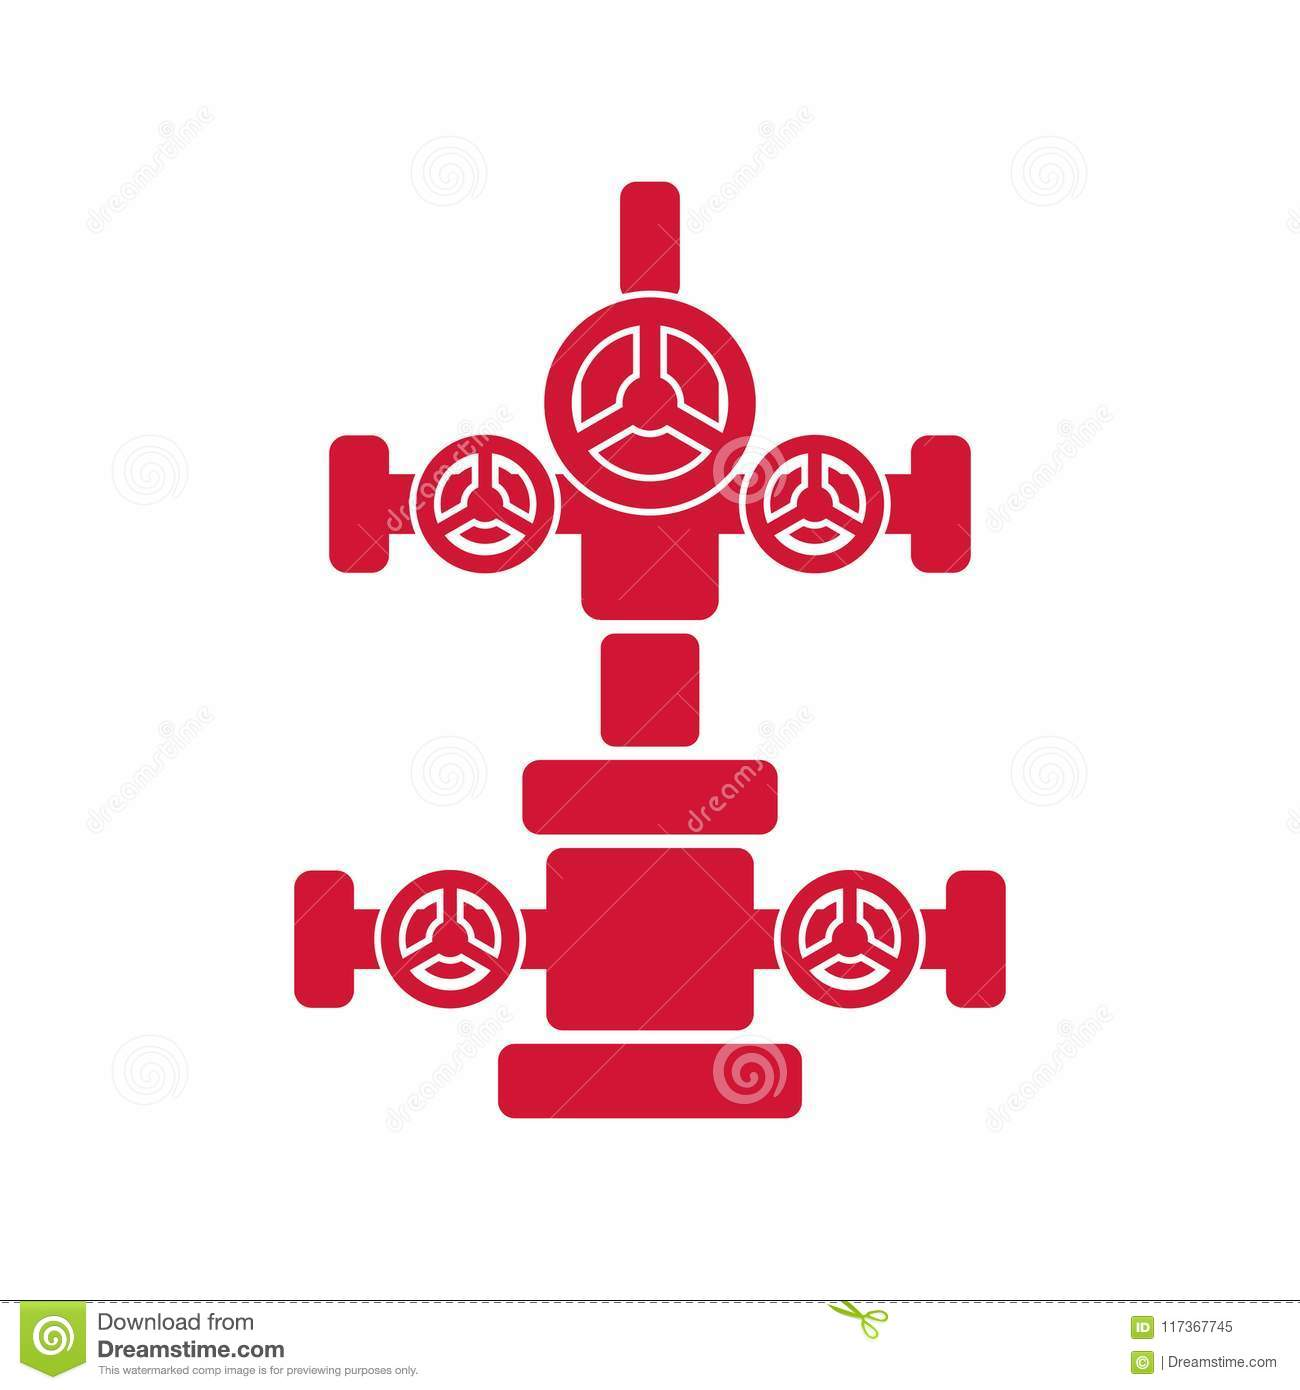 Wellhead Christmas Tree Diagram: Oil Wellhead Stock Illustrations